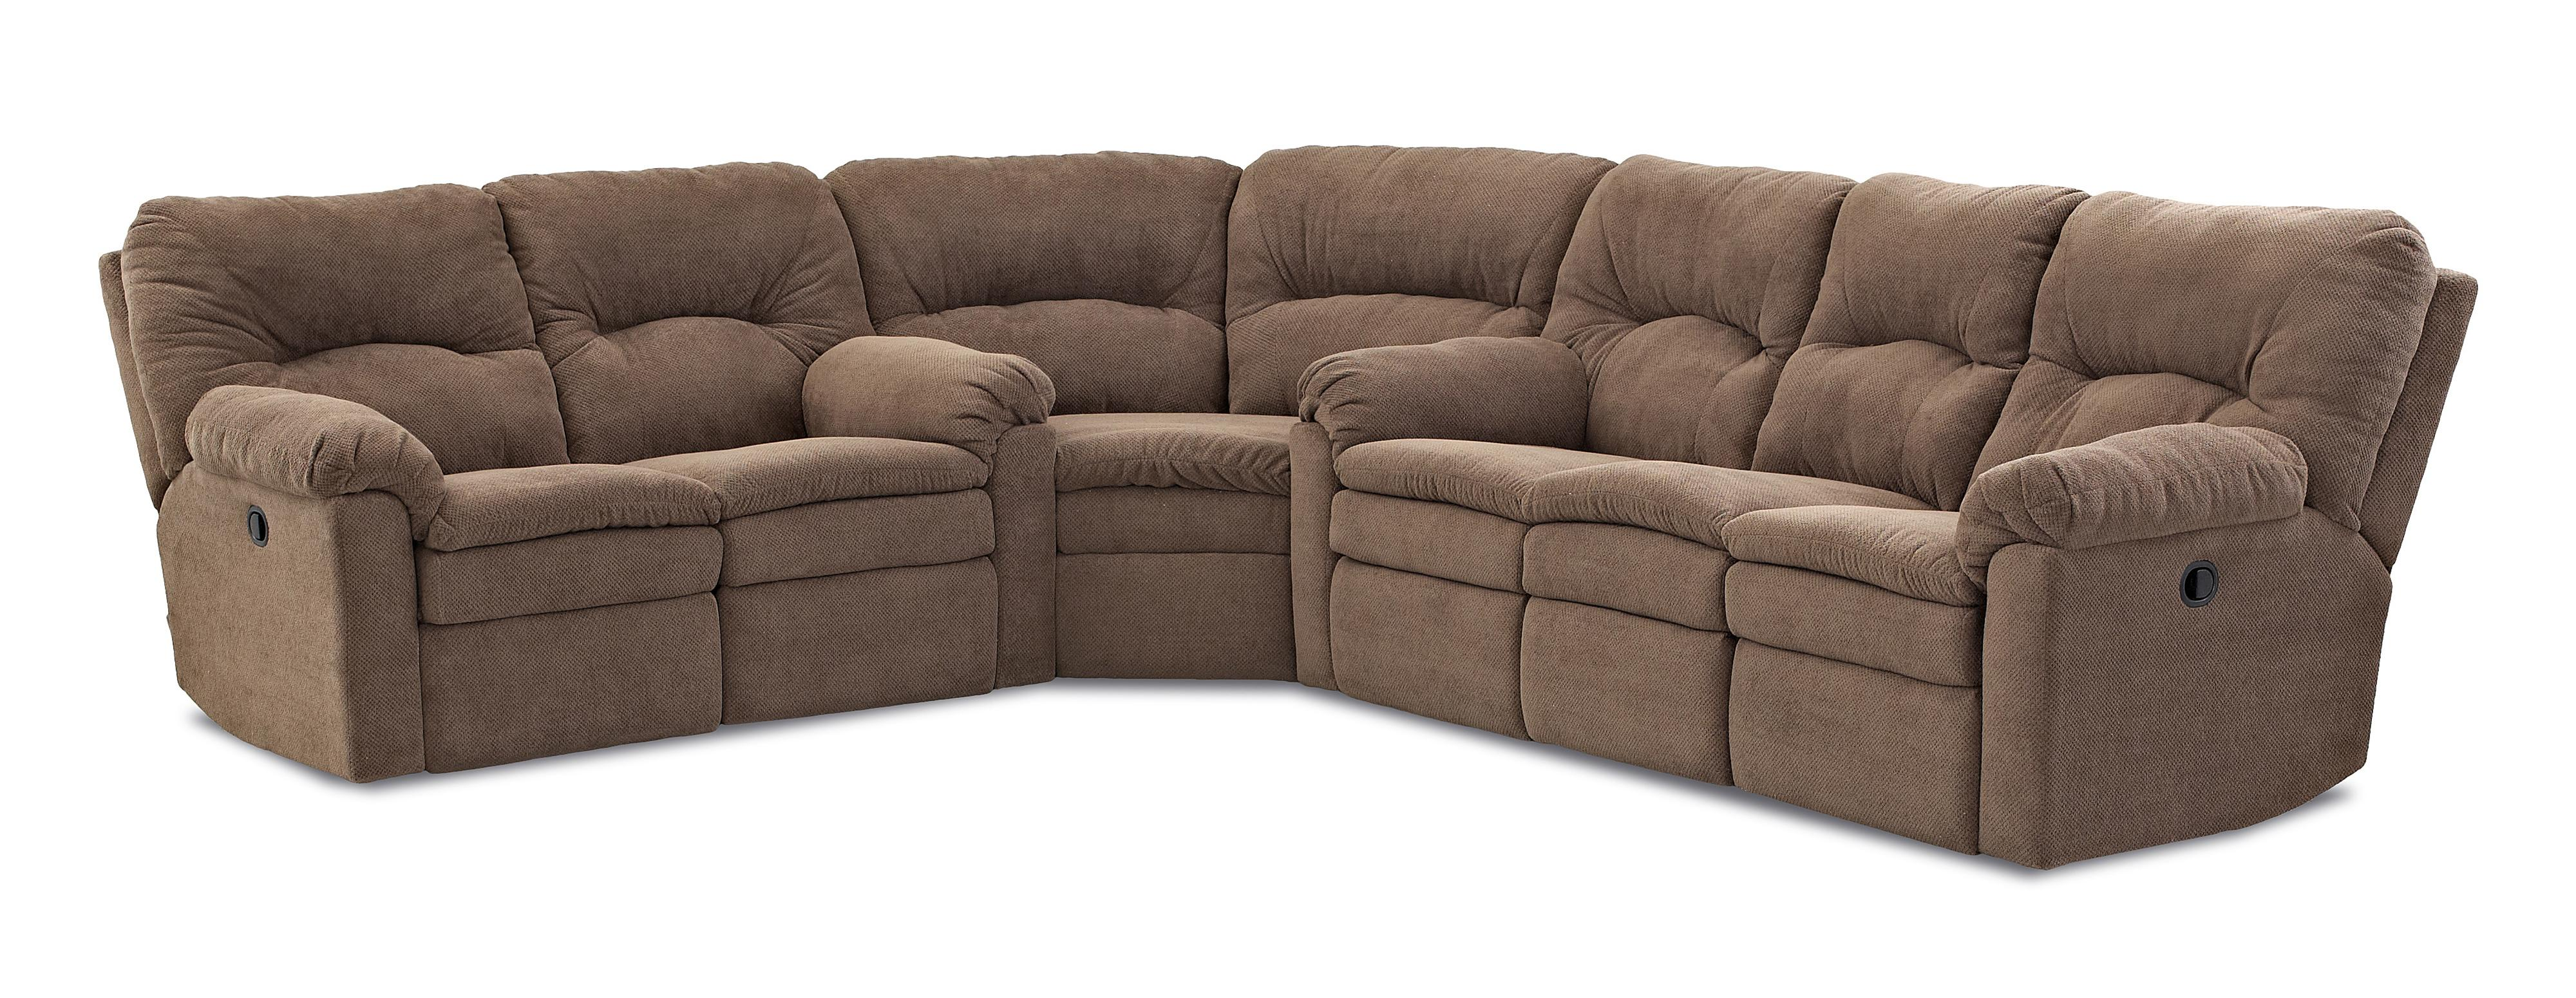 Casual 3 Piece Power Reclining Sectional Sofa  sc 1 st  Wolf Furniture : reclining sectionals sofas - Sectionals, Sofas & Couches